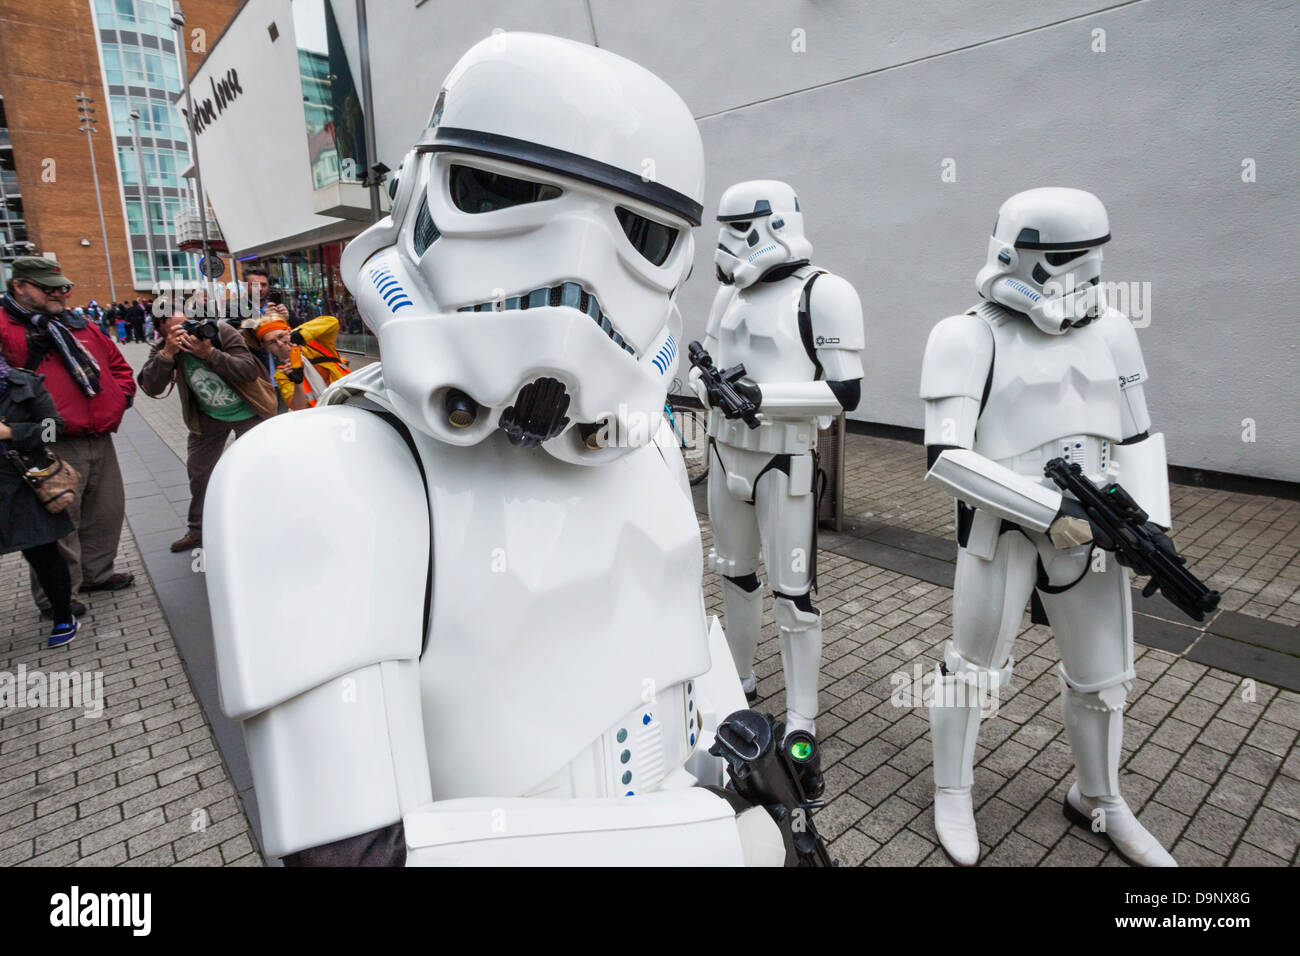 England, London, Stratford, Annual Sci-fi Costume Parade, Star Wars, Stormtroopers Stock Photo